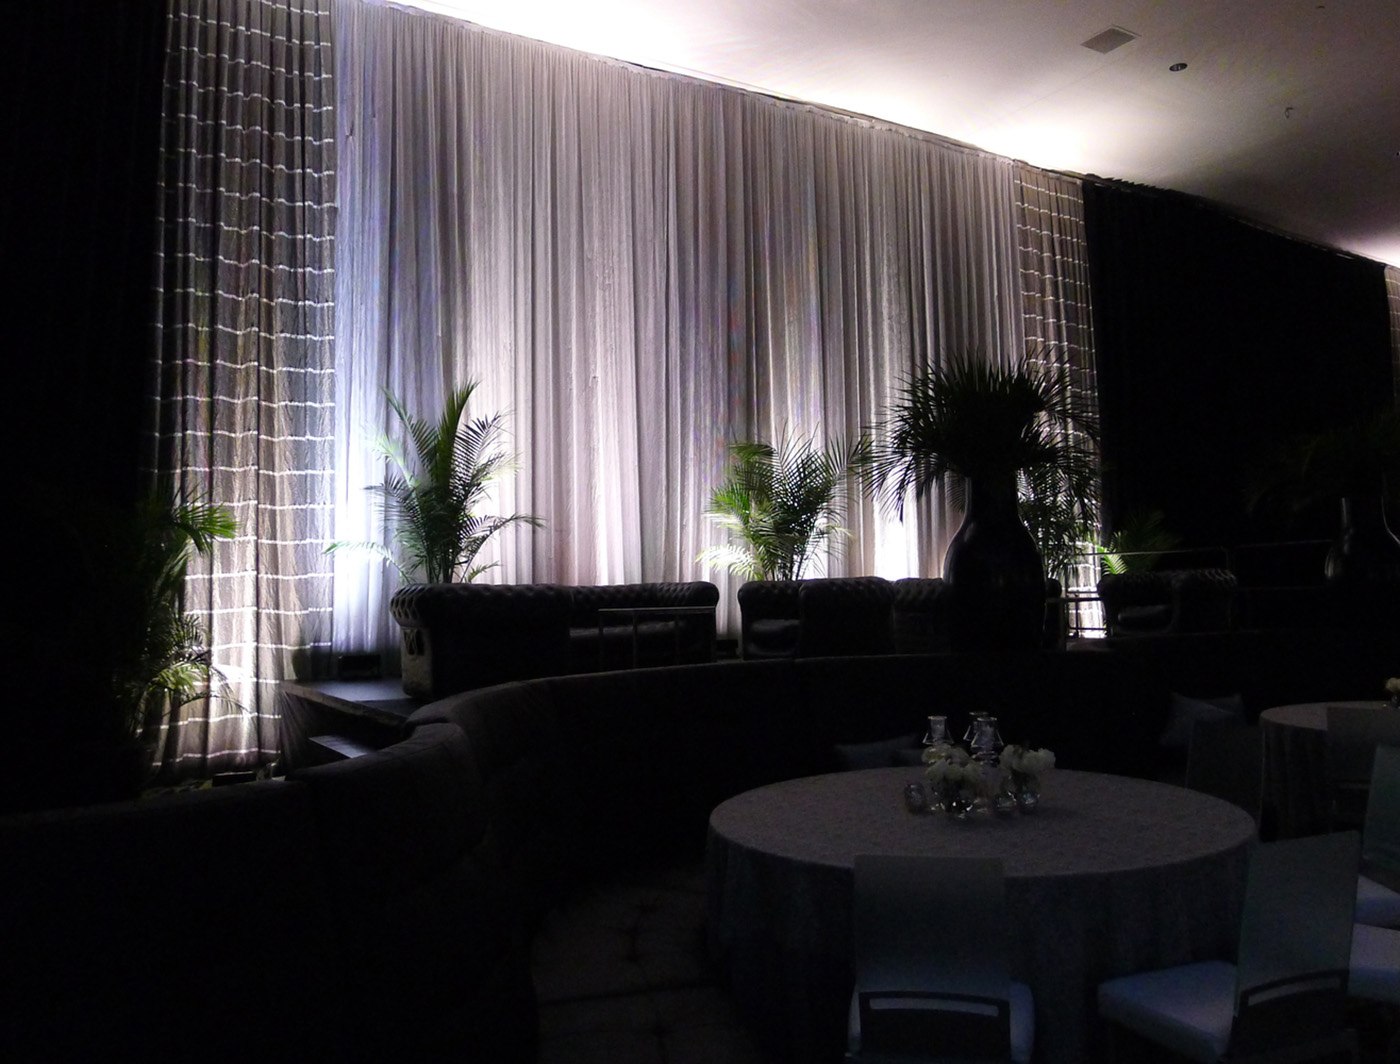 Black Drapes with Lynes and Silvet